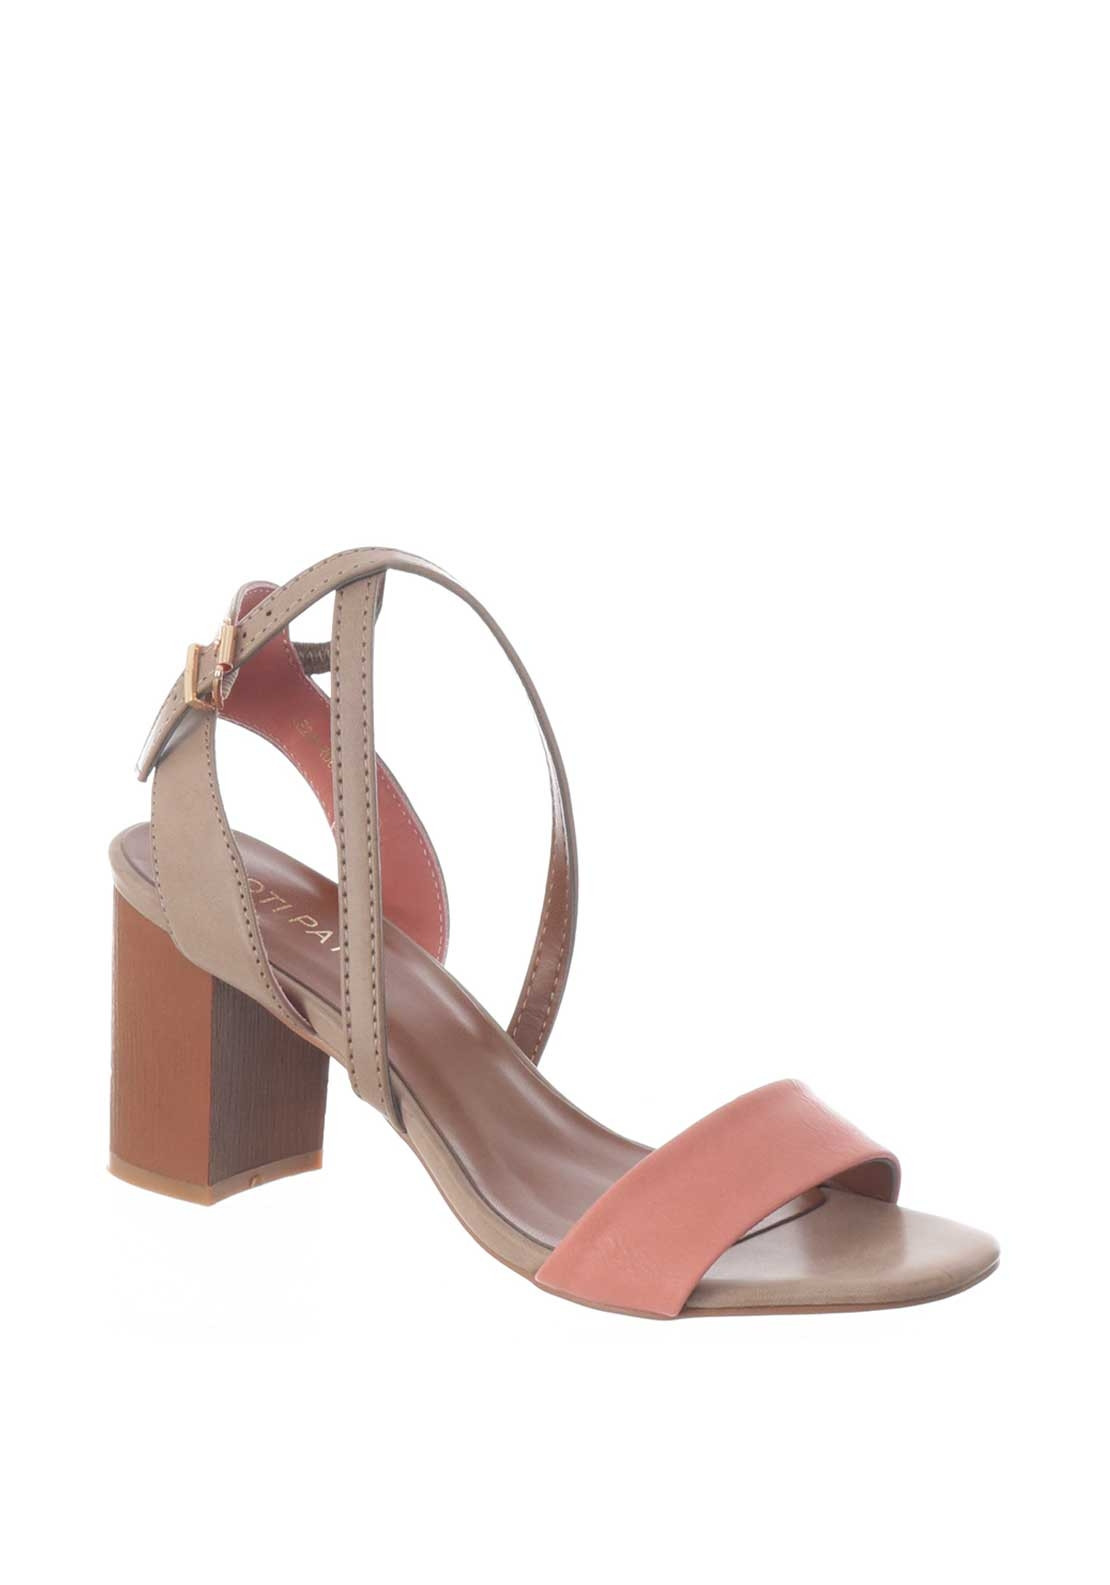 5a437e2b9a Boutique Strappy Block Heel Sandal, Pink. Be the first to review this  product